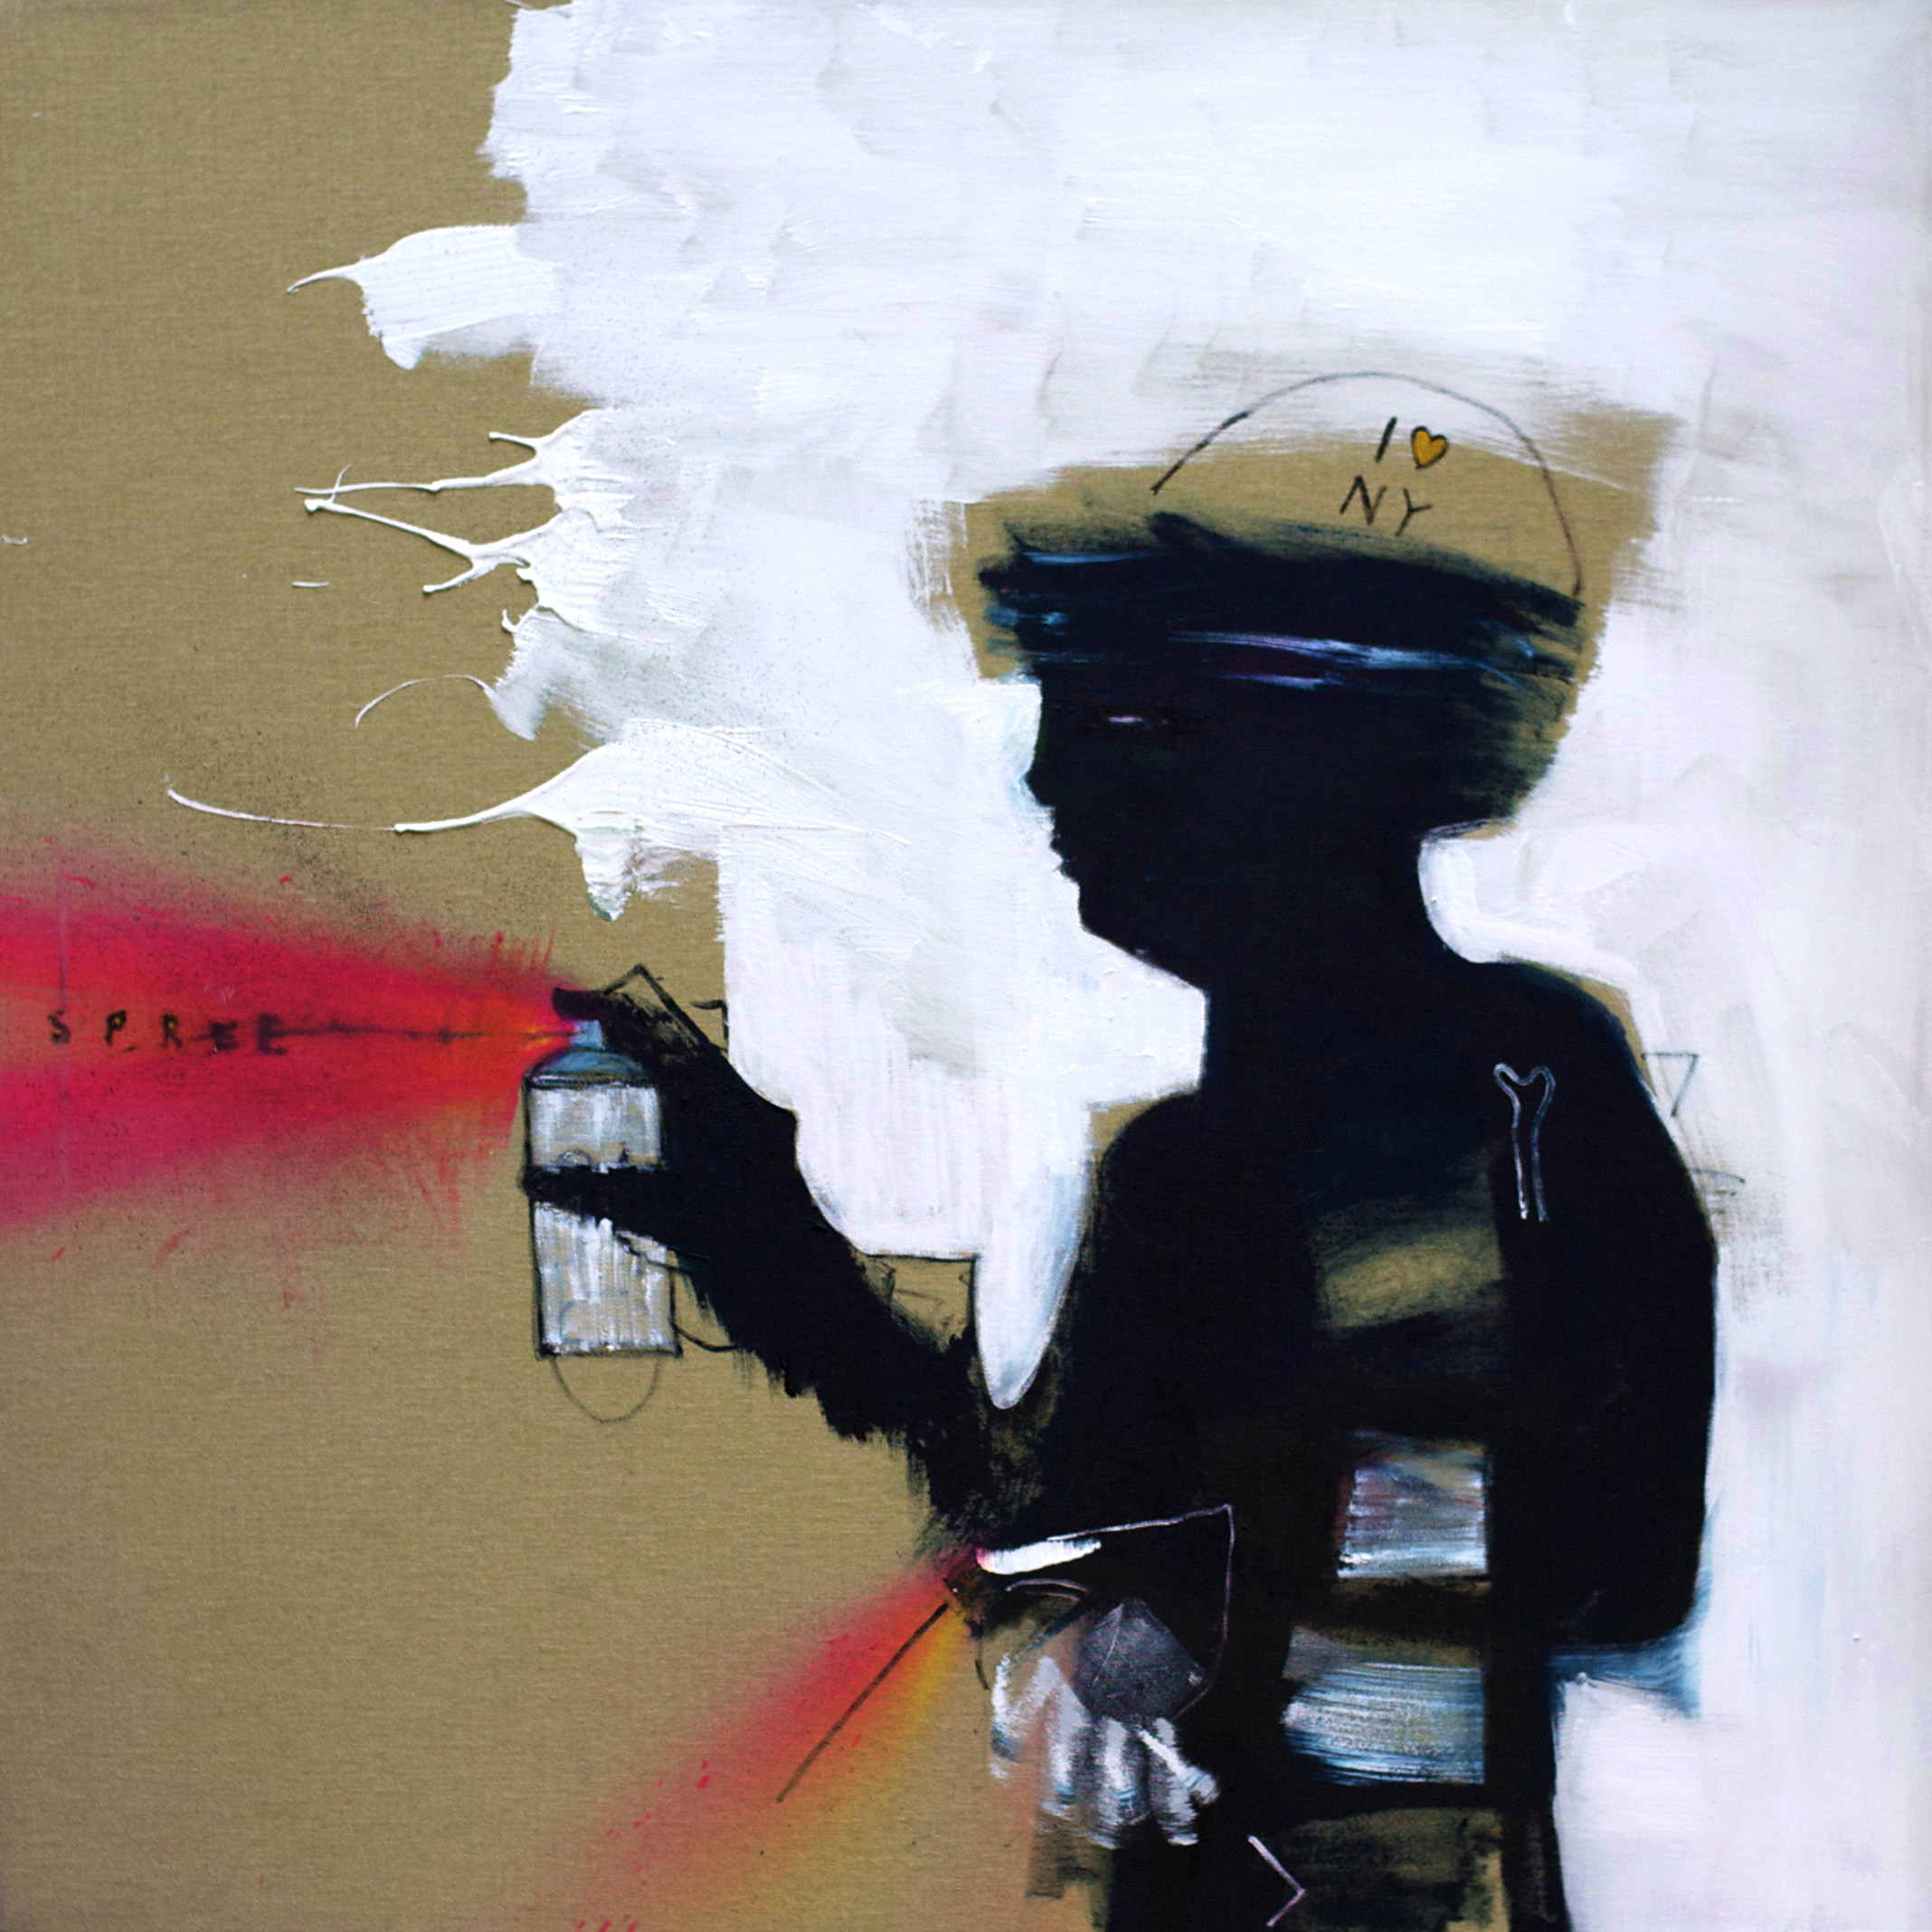 SPREE-90X90Cm-35.4x35.4In-MMC-BERLIN-2011